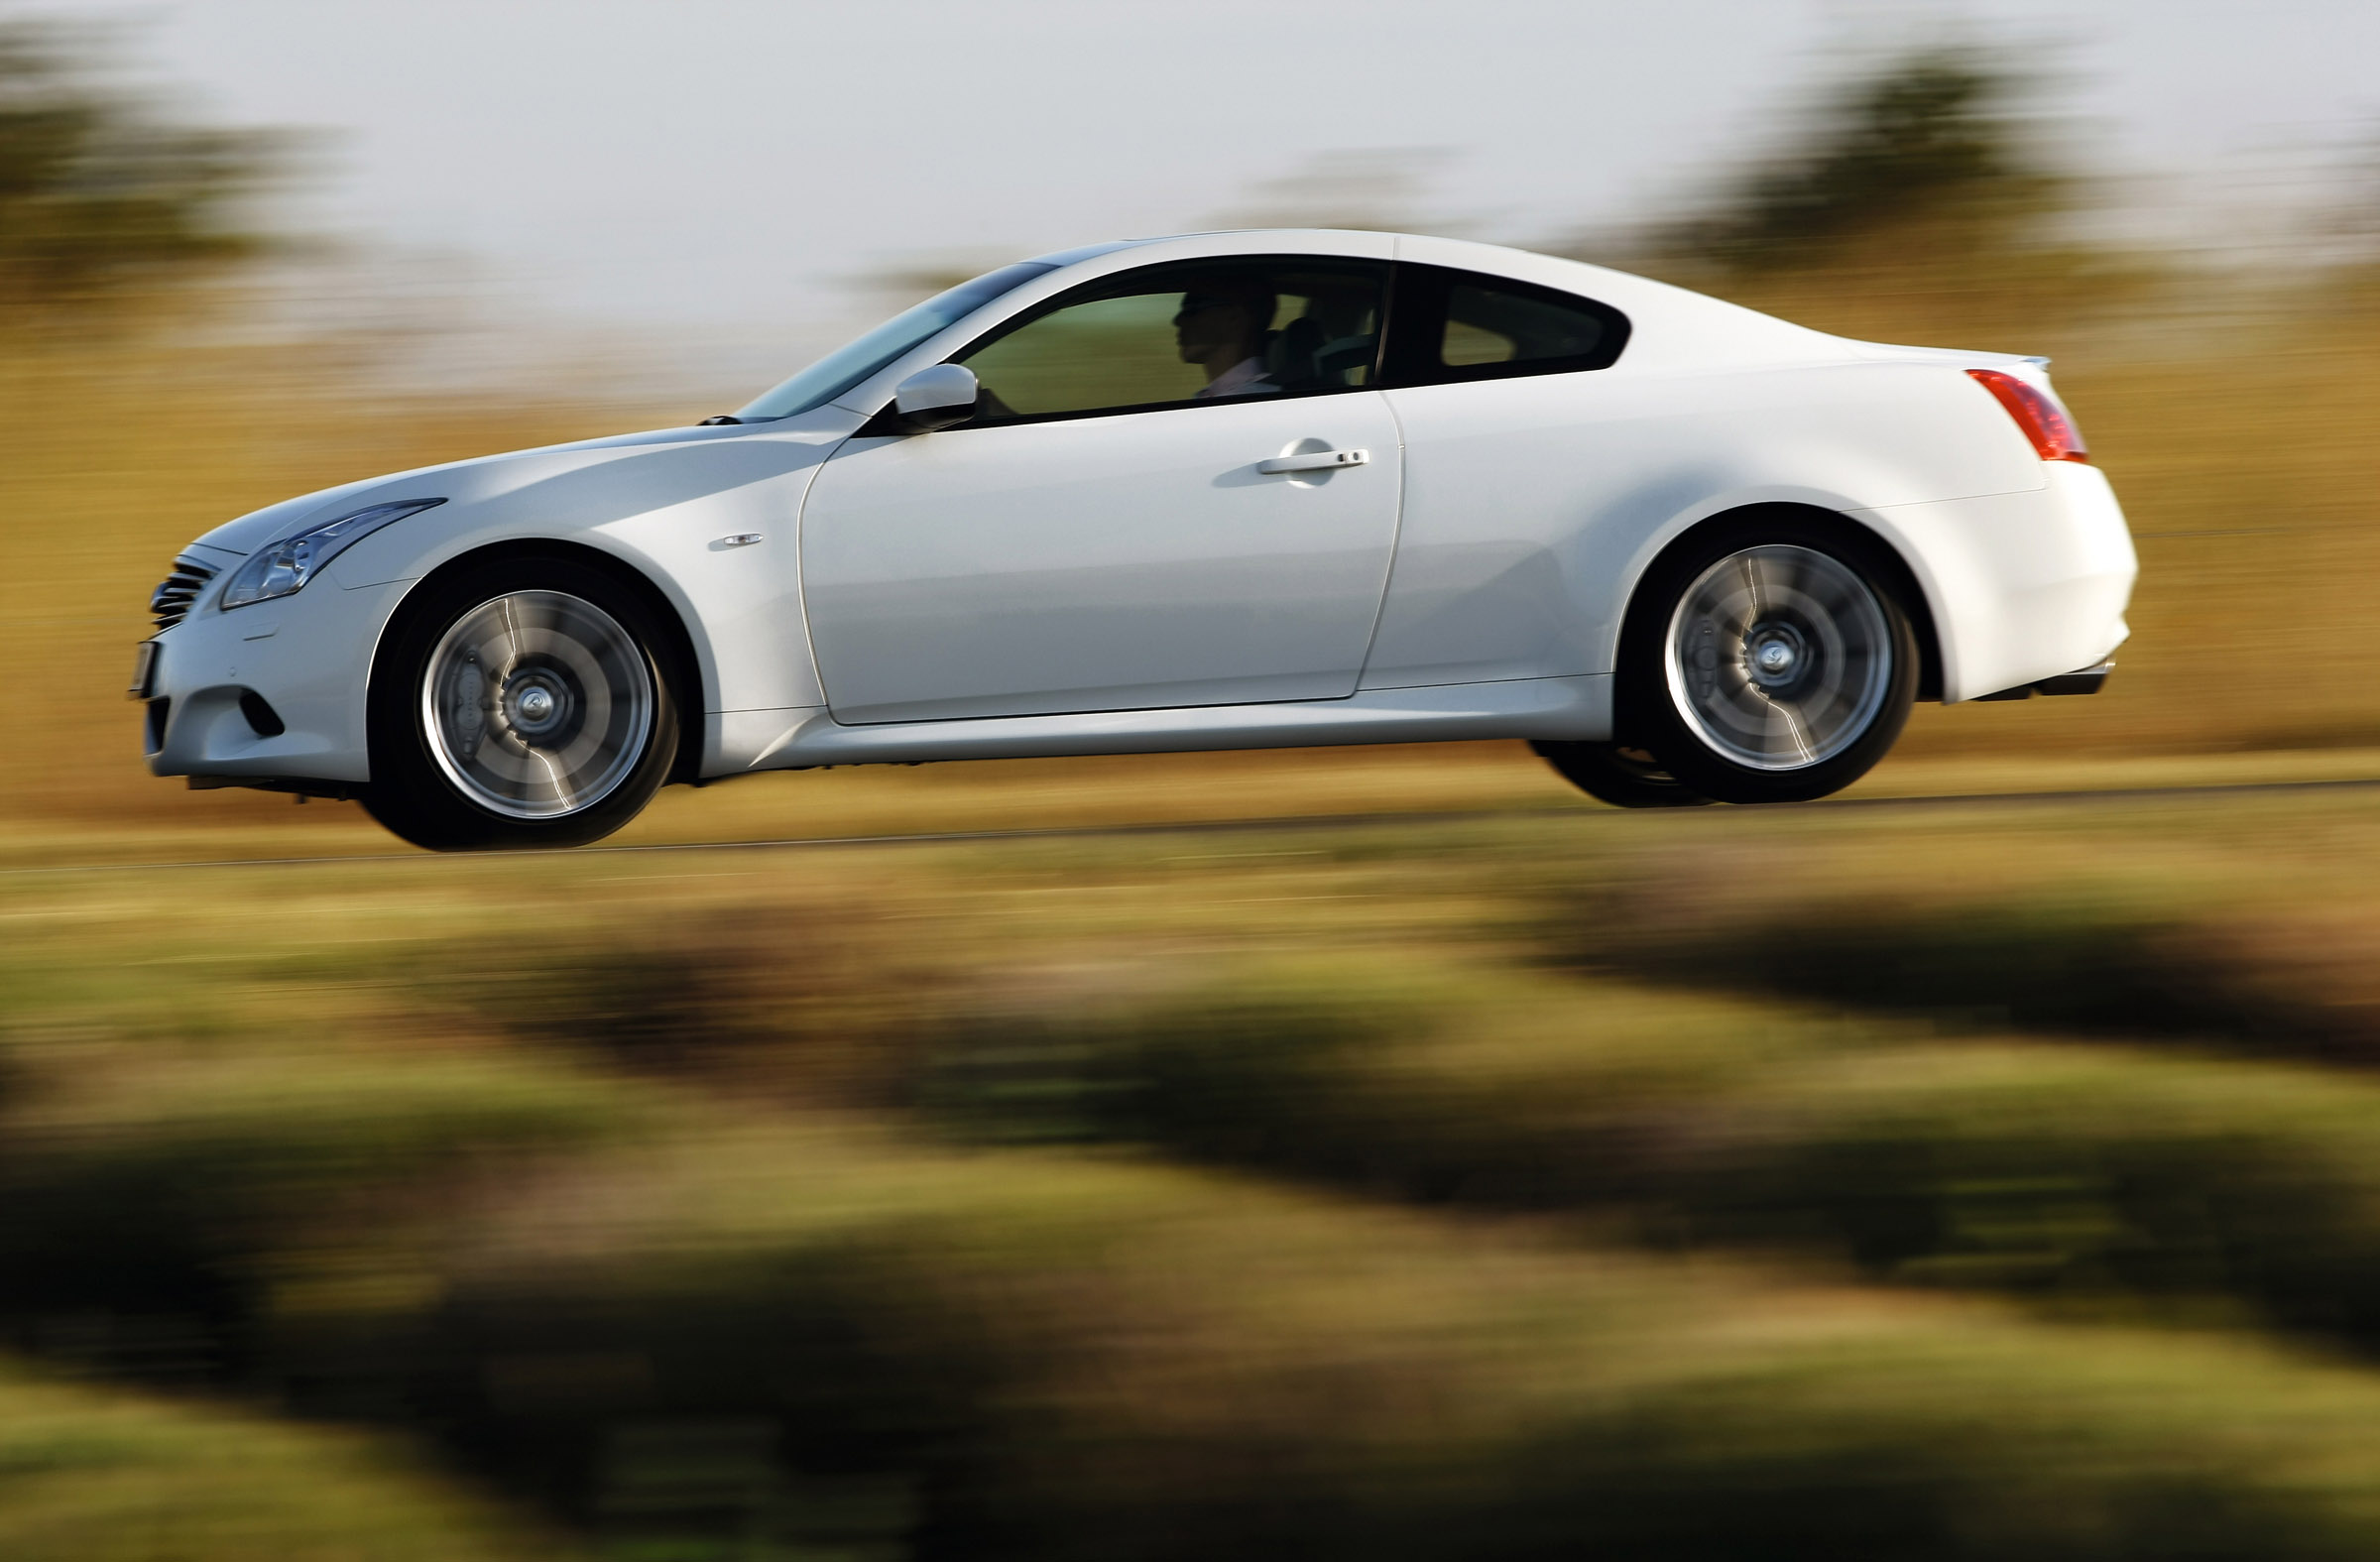 Infiniti g37 coupe the sophisticated sports coupe infiniti g37 coupe vanachro Choice Image